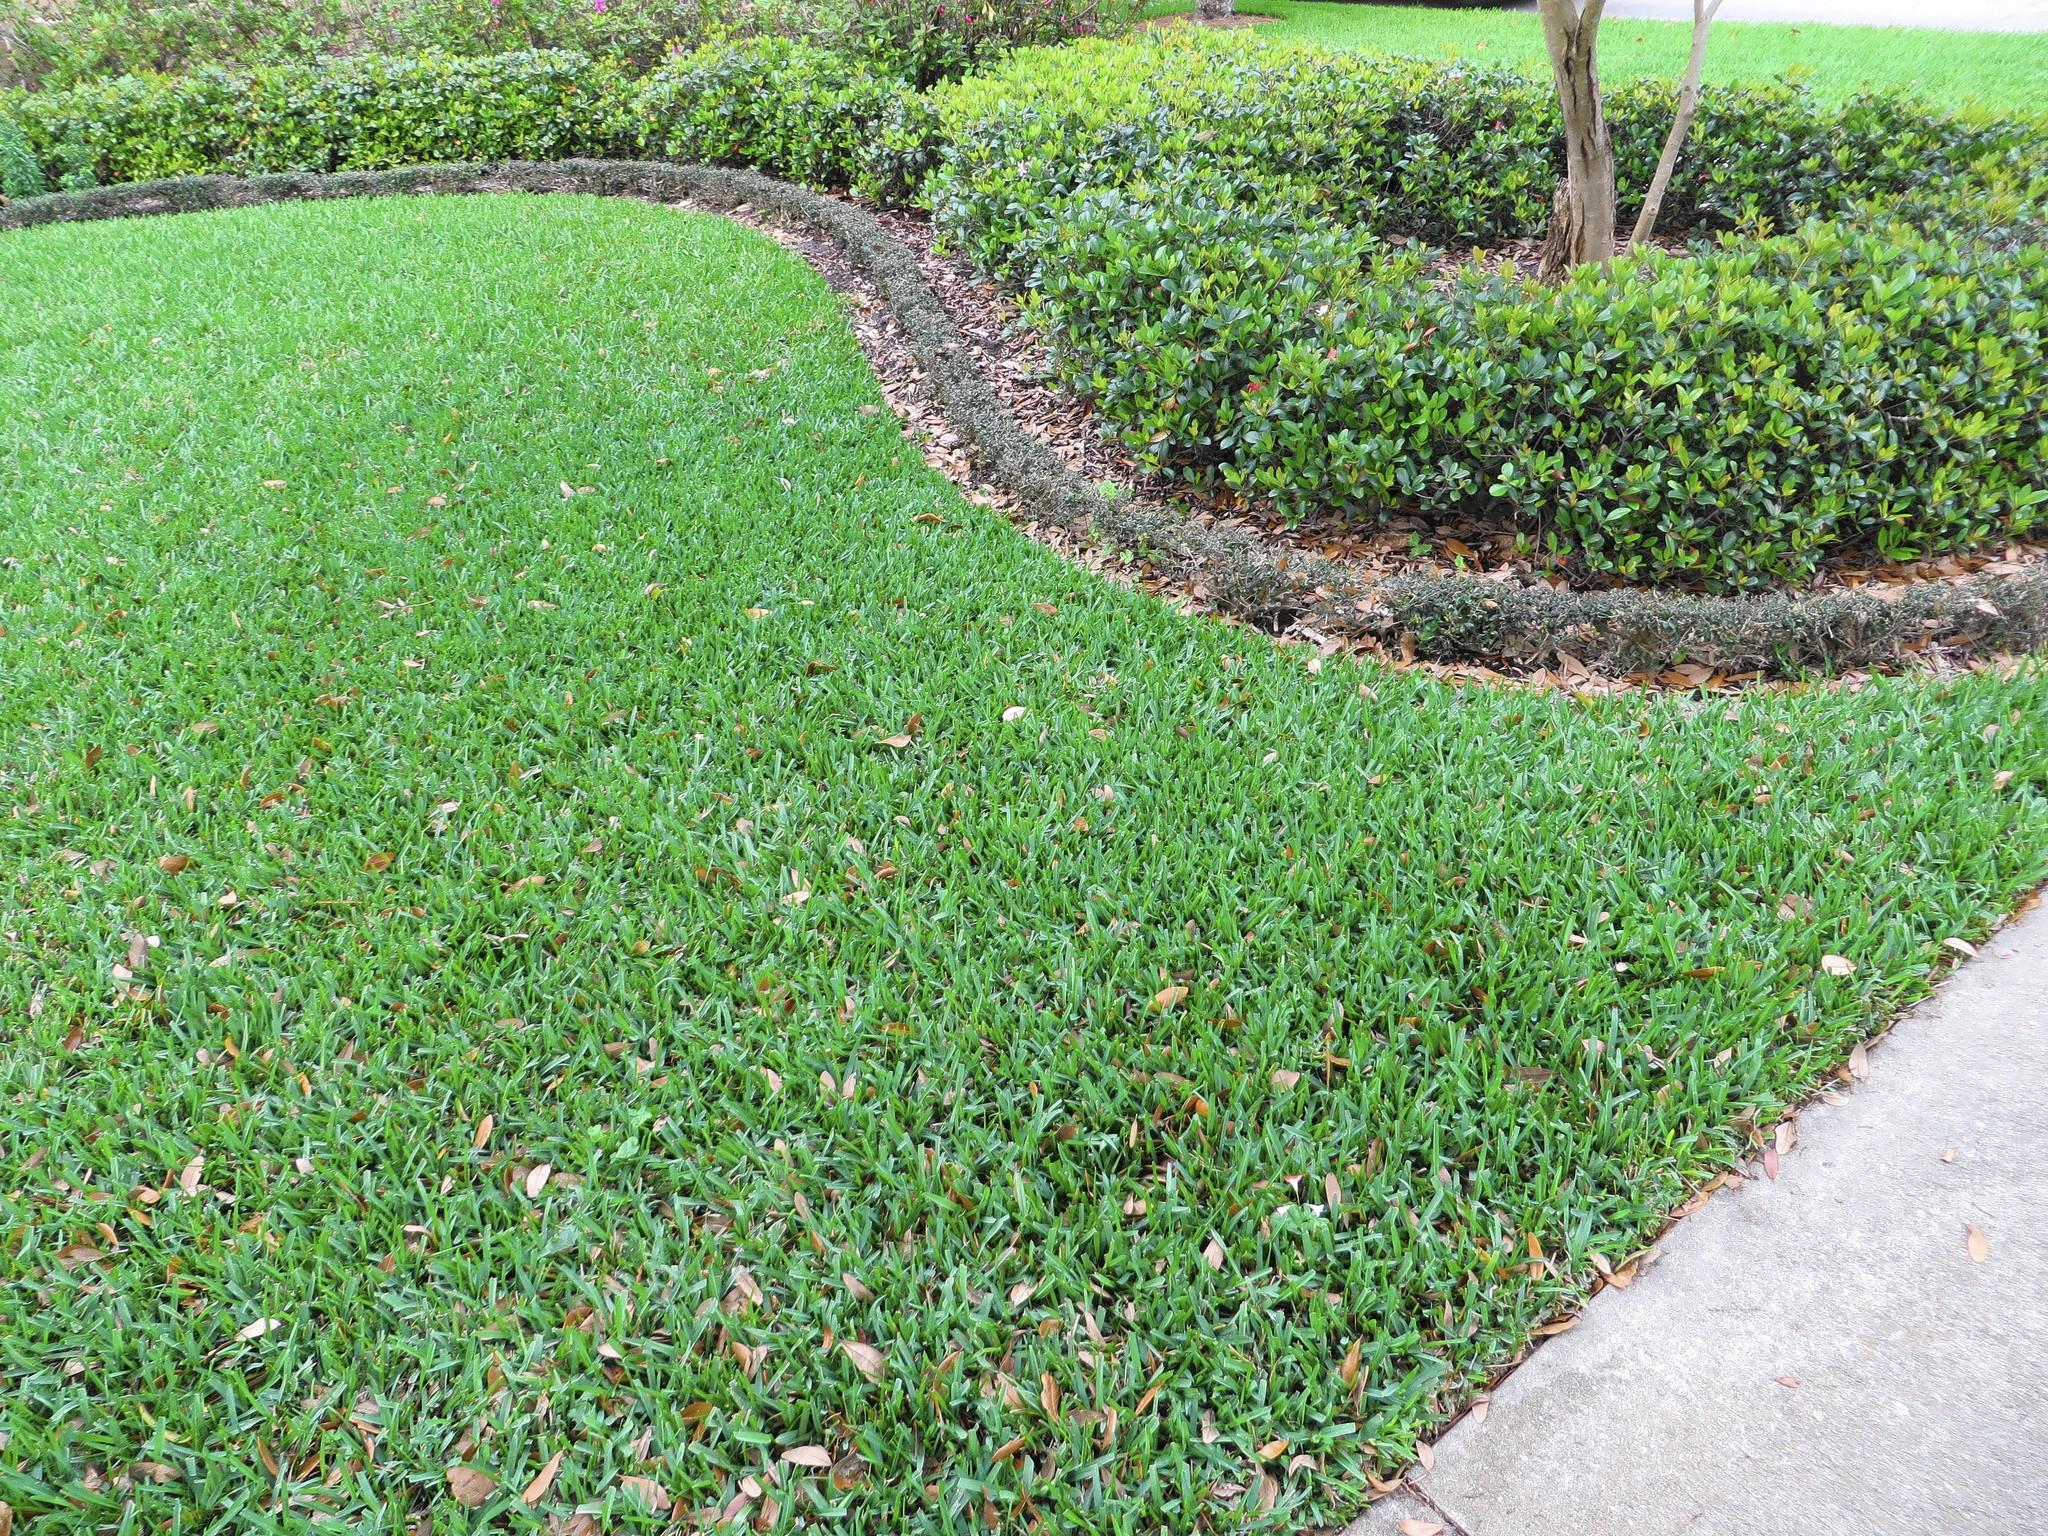 A Lake Eola Heights home with a lush lawn used more than 300,000 gallons of water in 2013.